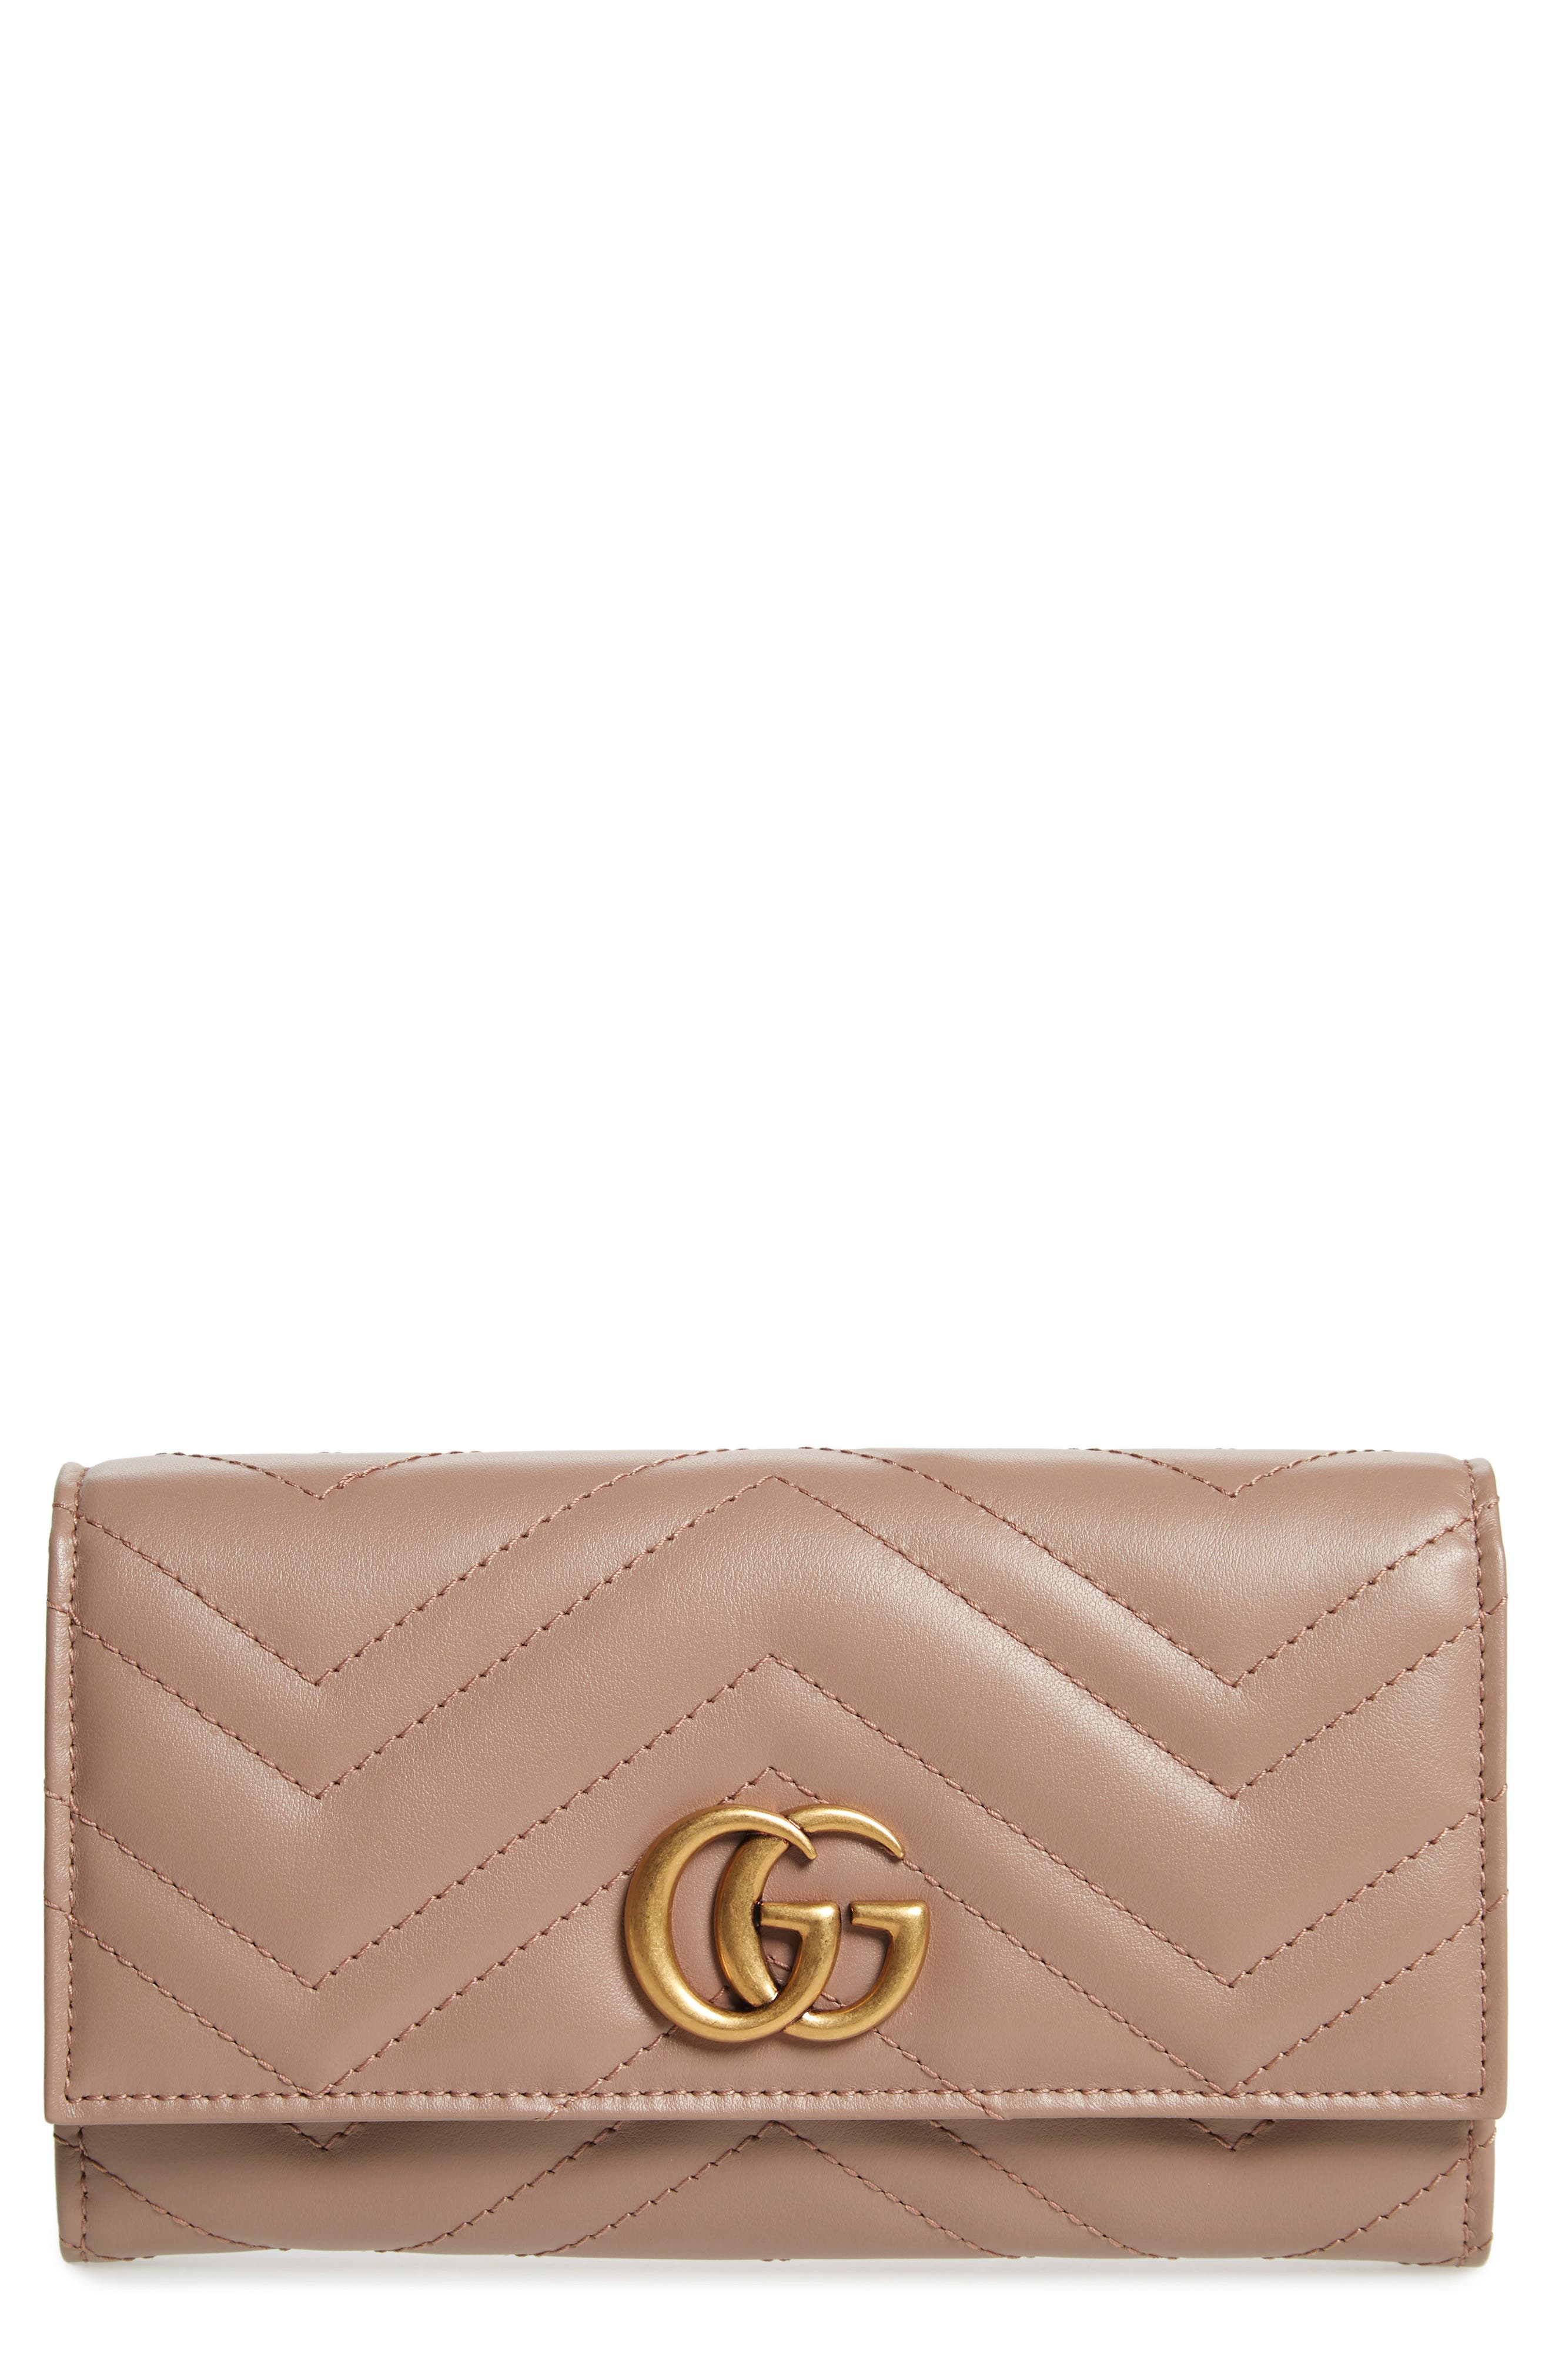 Gucci GG Matelassé Leather Continental Wallet | Nordstrom